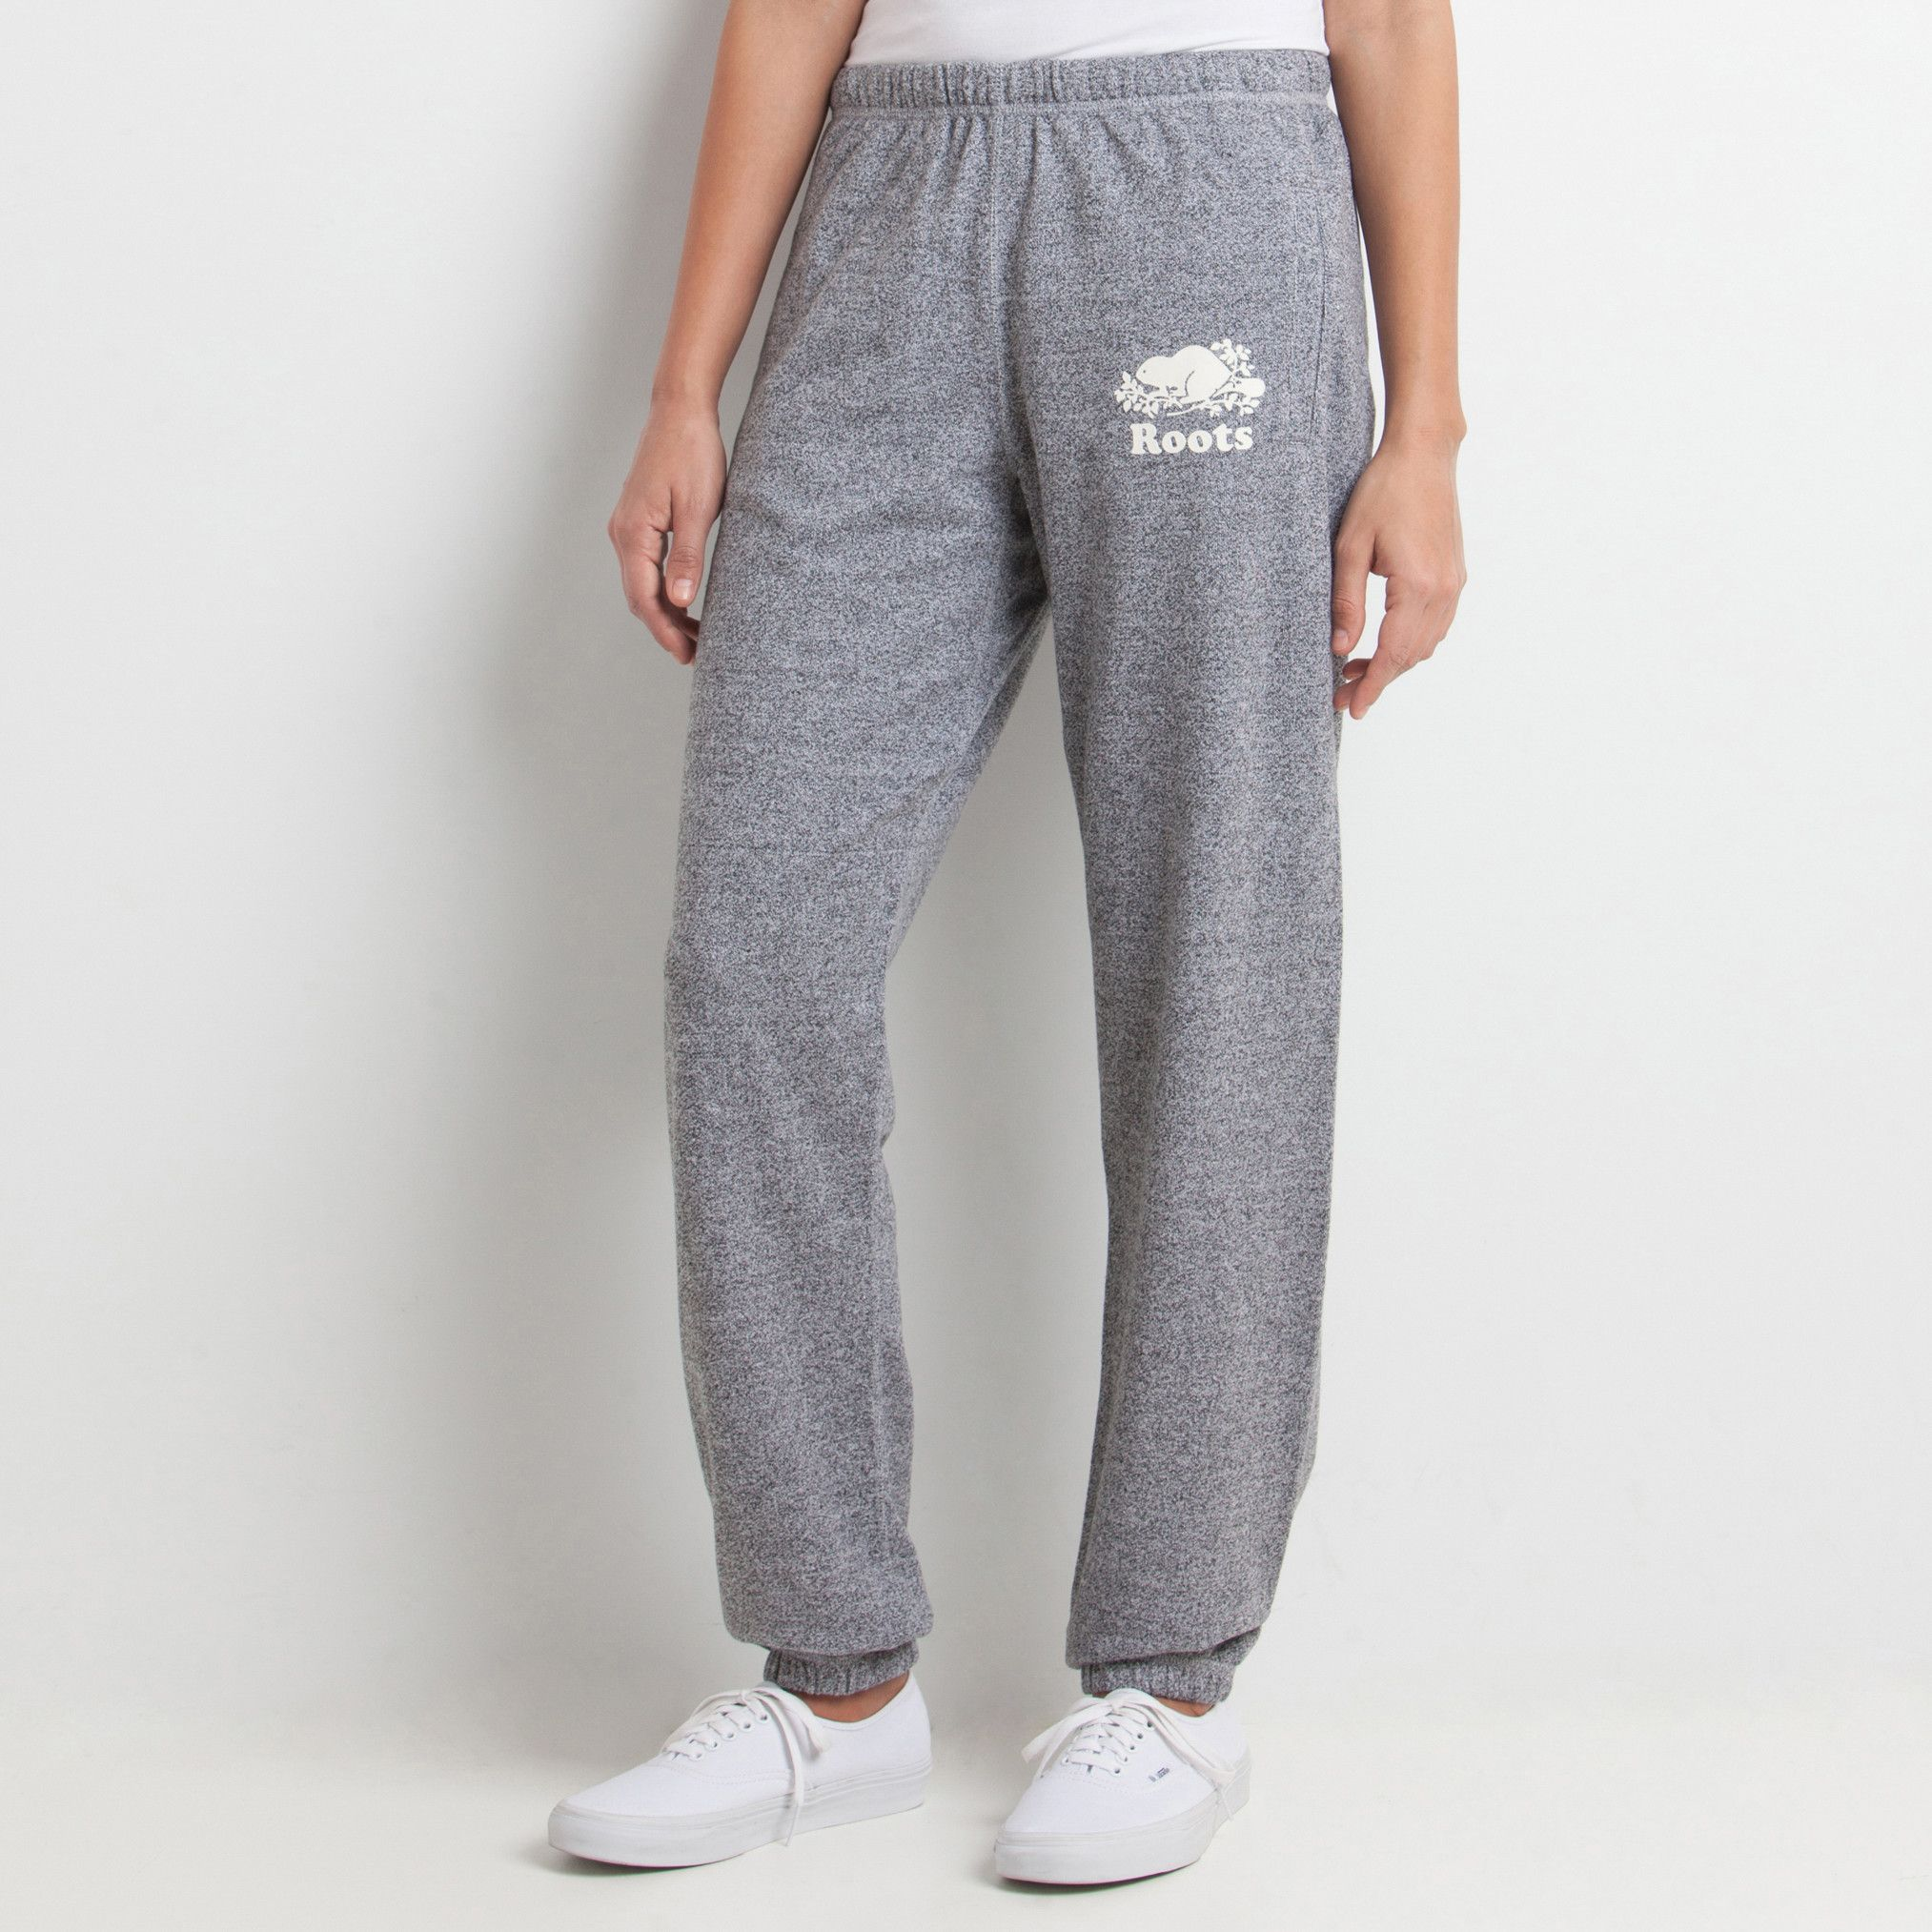 bb8e1800d460 Pocket Original Sweatpant Roots